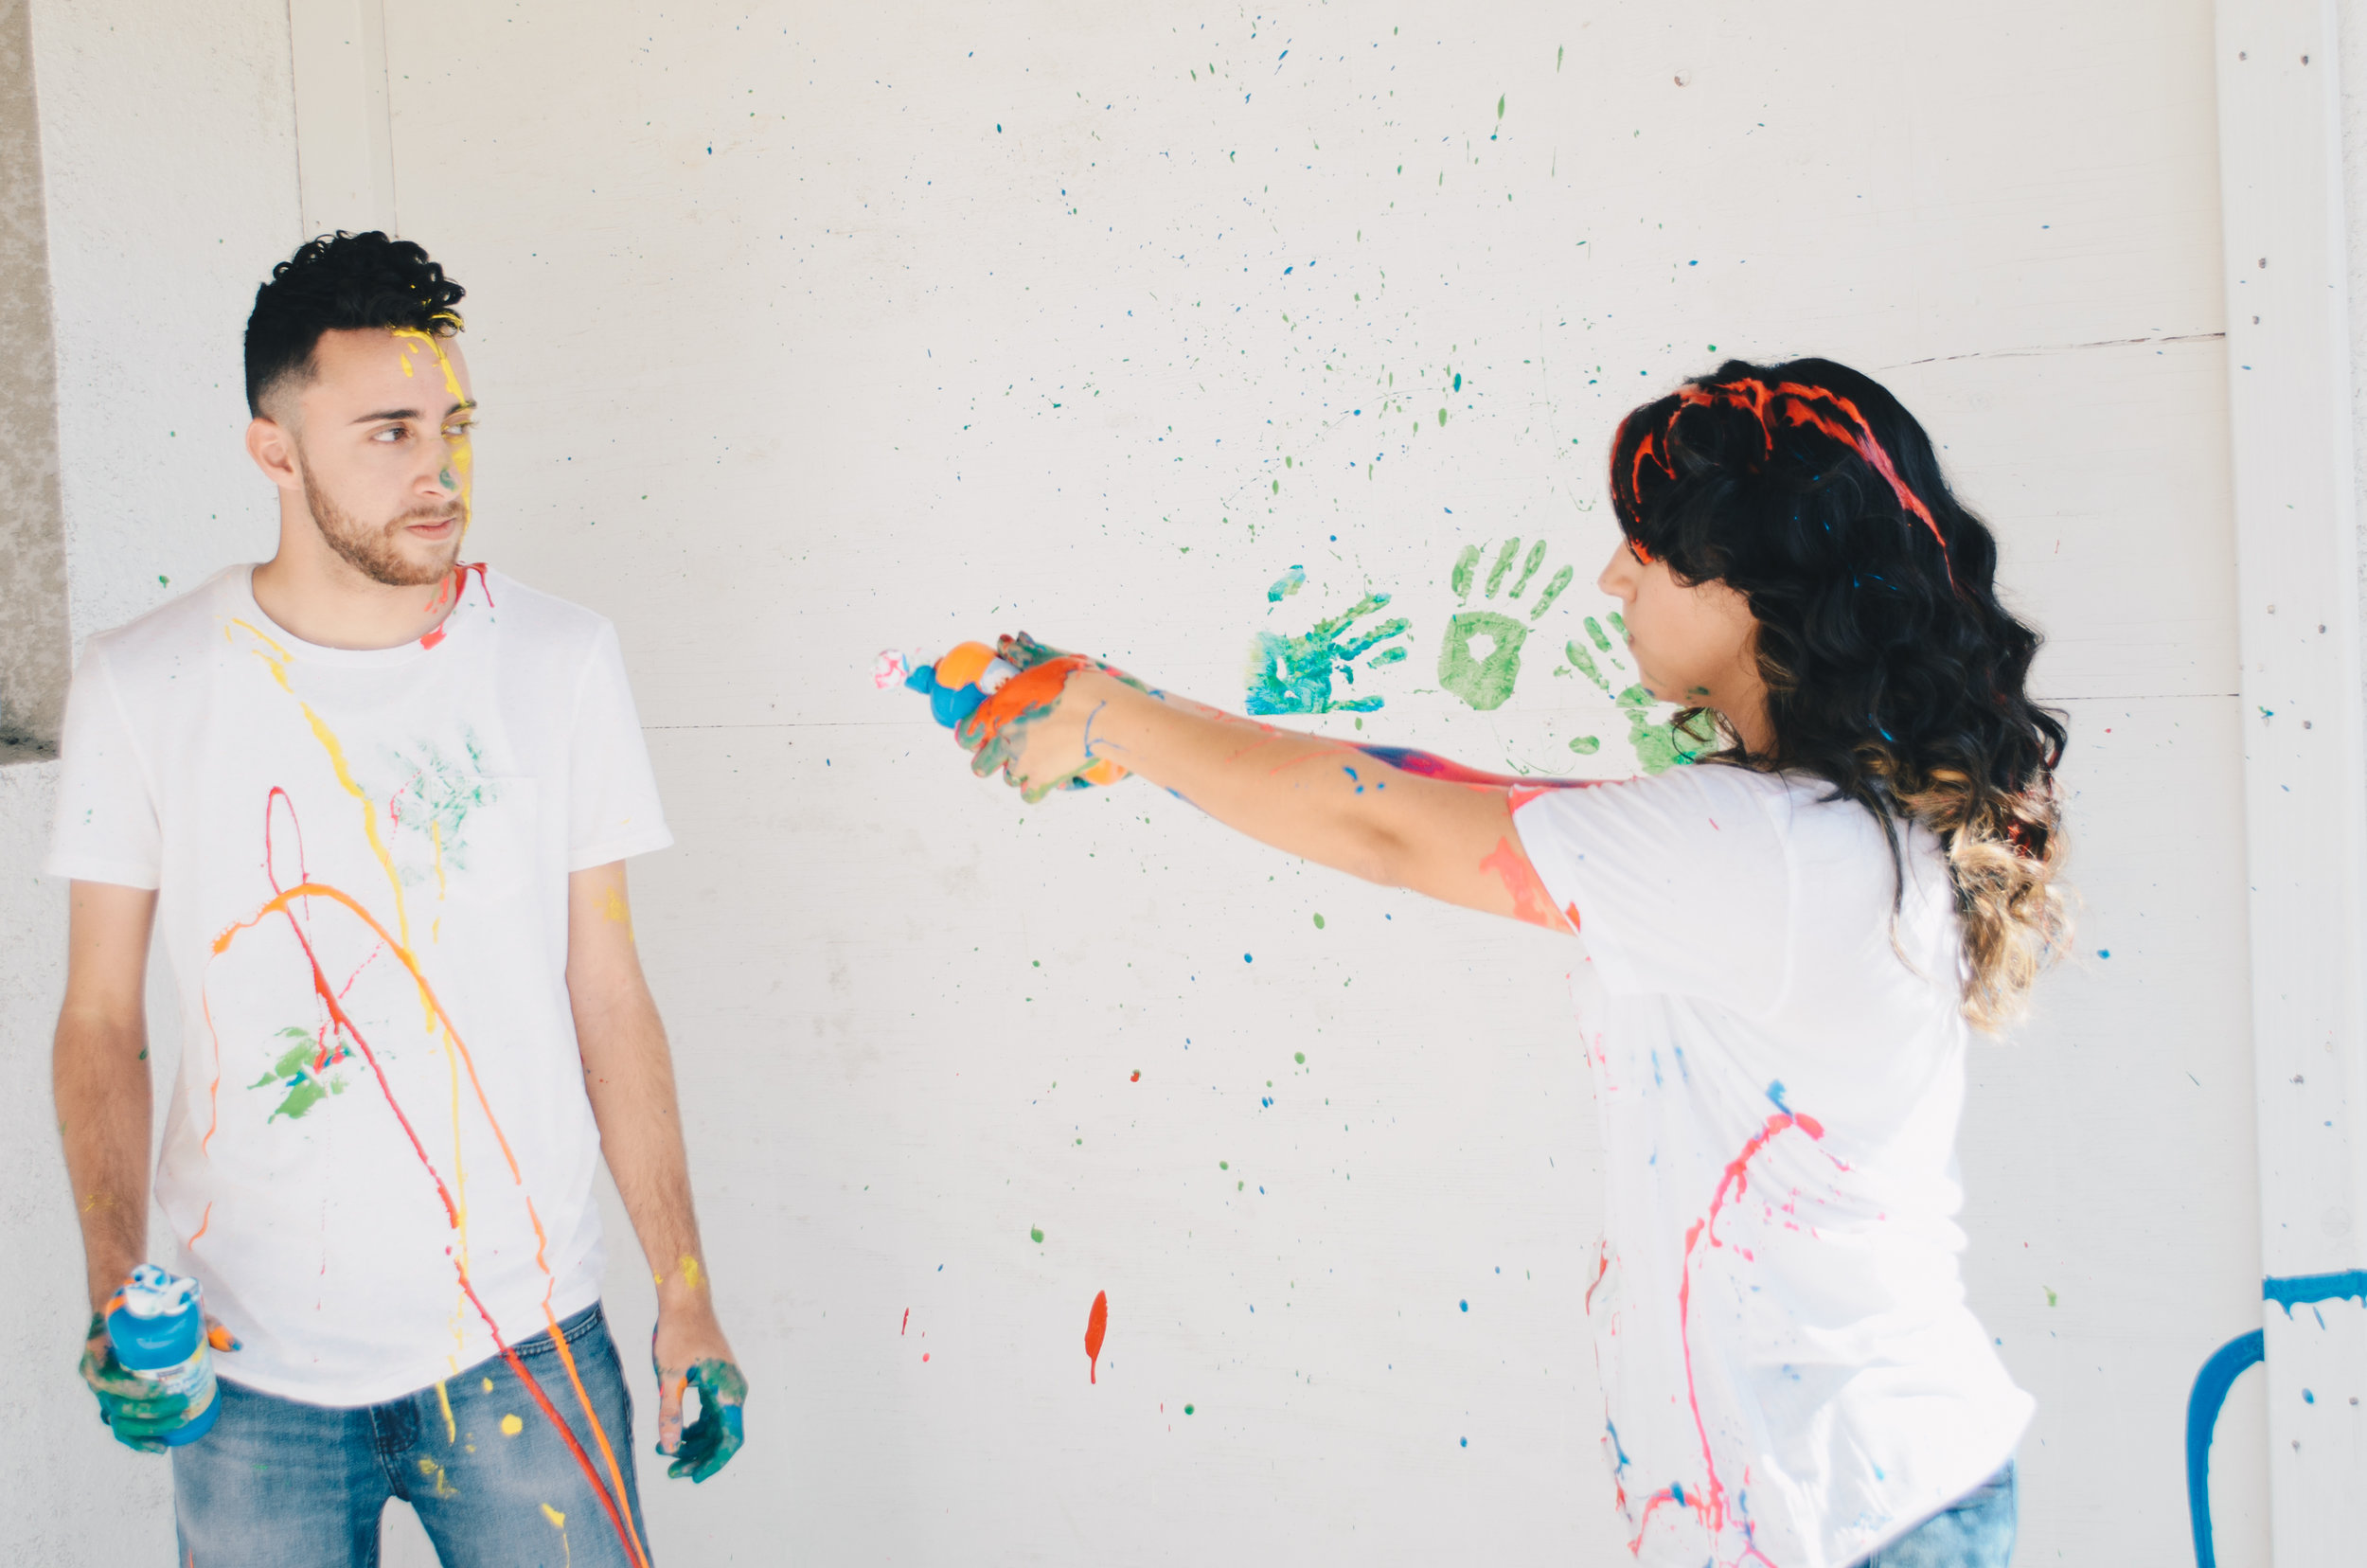 central-fl-christian-paint-war-session-9.jpg